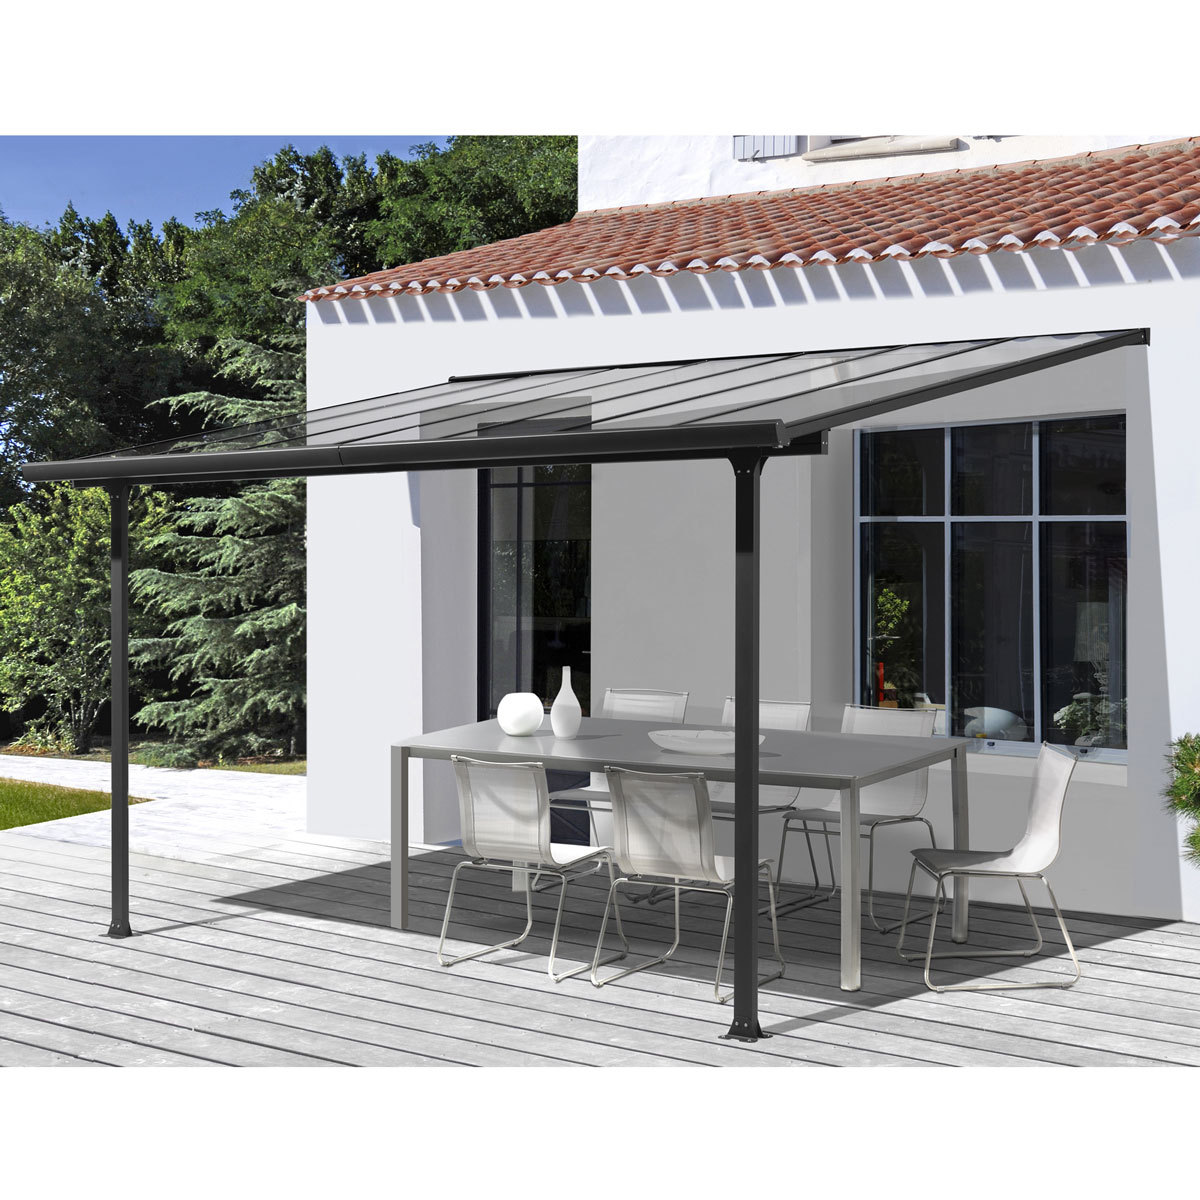 pergola en aluminium et polycarbonate 3x3 m abrirama tt3030al l 39 abri de jardin. Black Bedroom Furniture Sets. Home Design Ideas